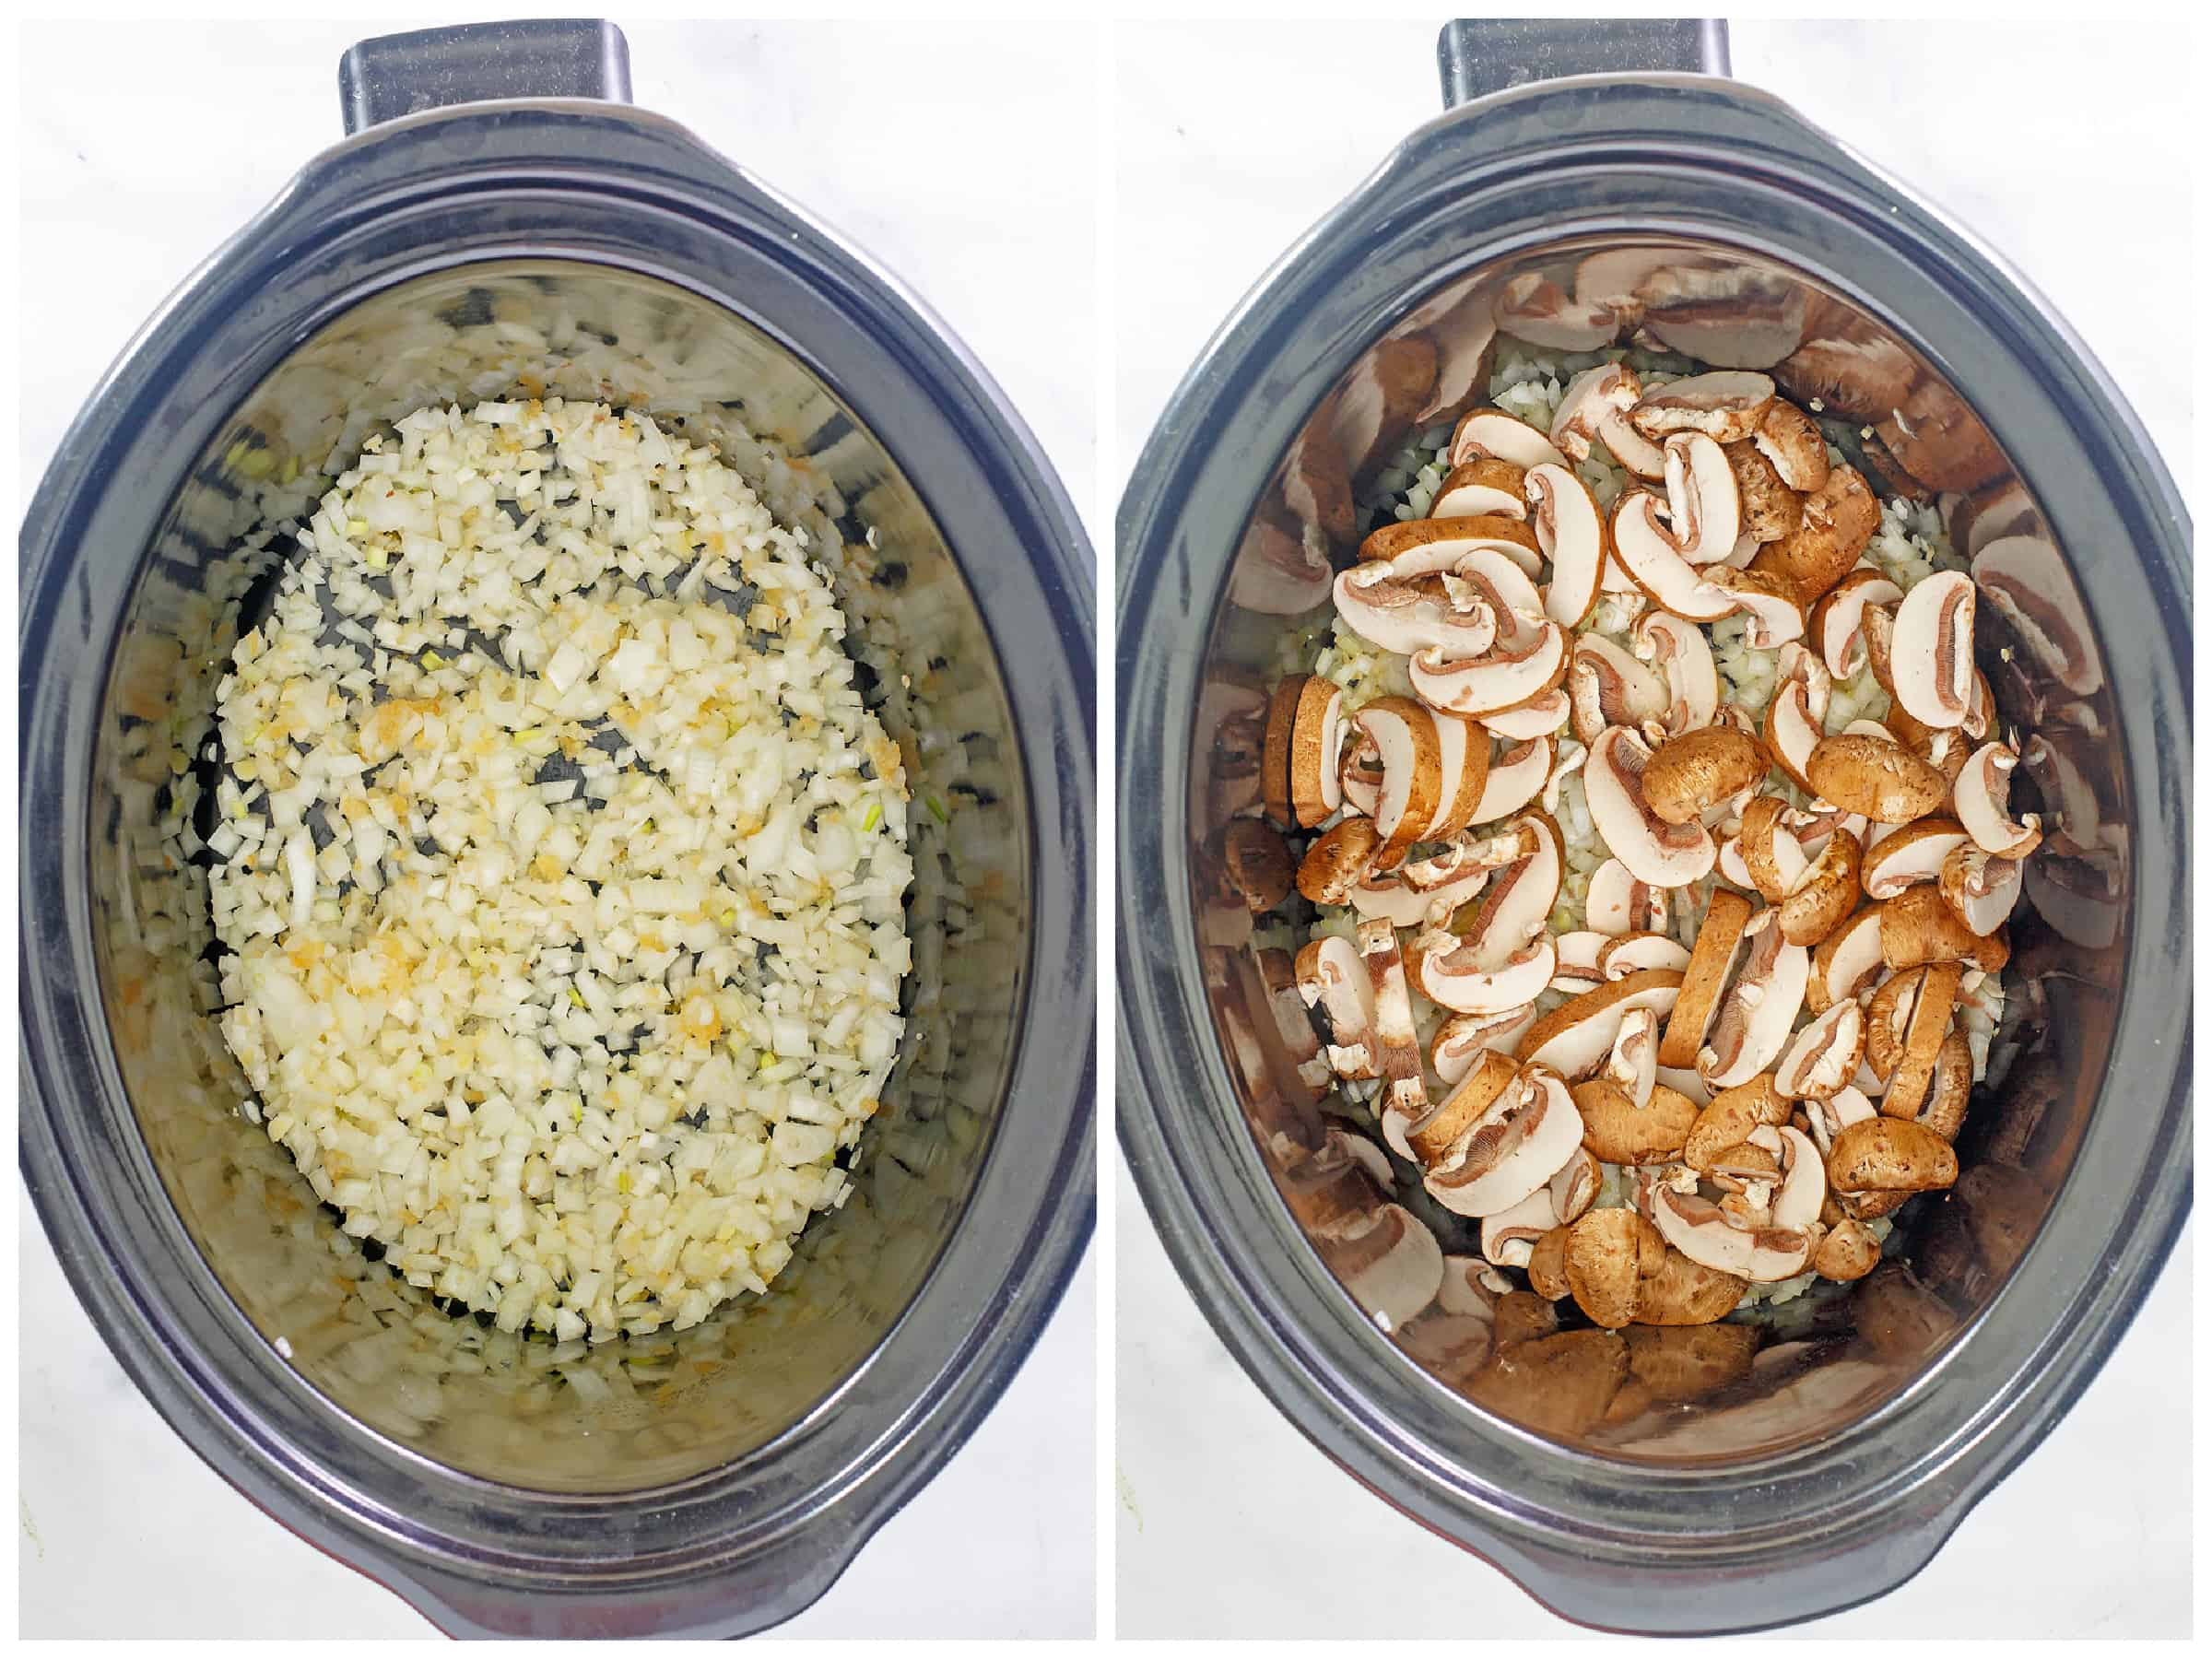 onions and mushrooms in slow cooker